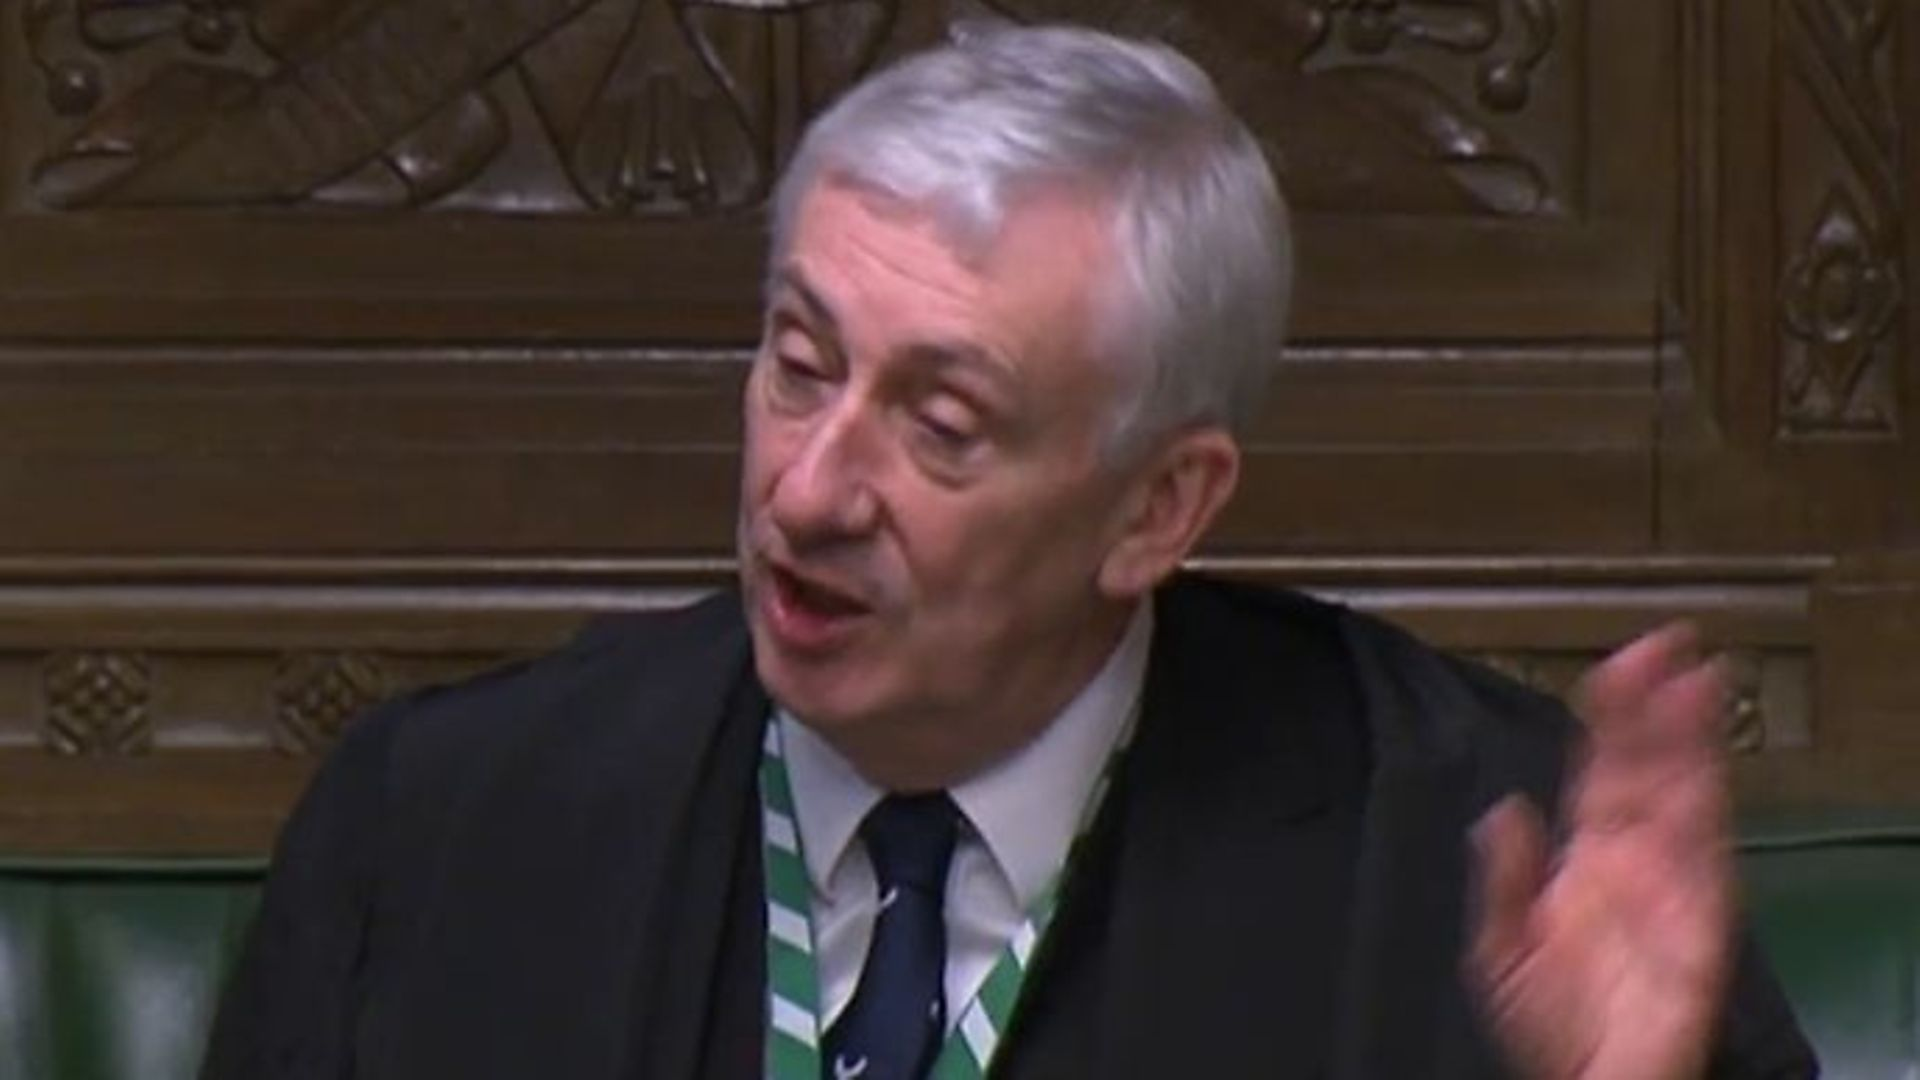 Sir Lindsay Hoyle (pictured above) in the House of Commons - Credit: Parliamentlive.tv